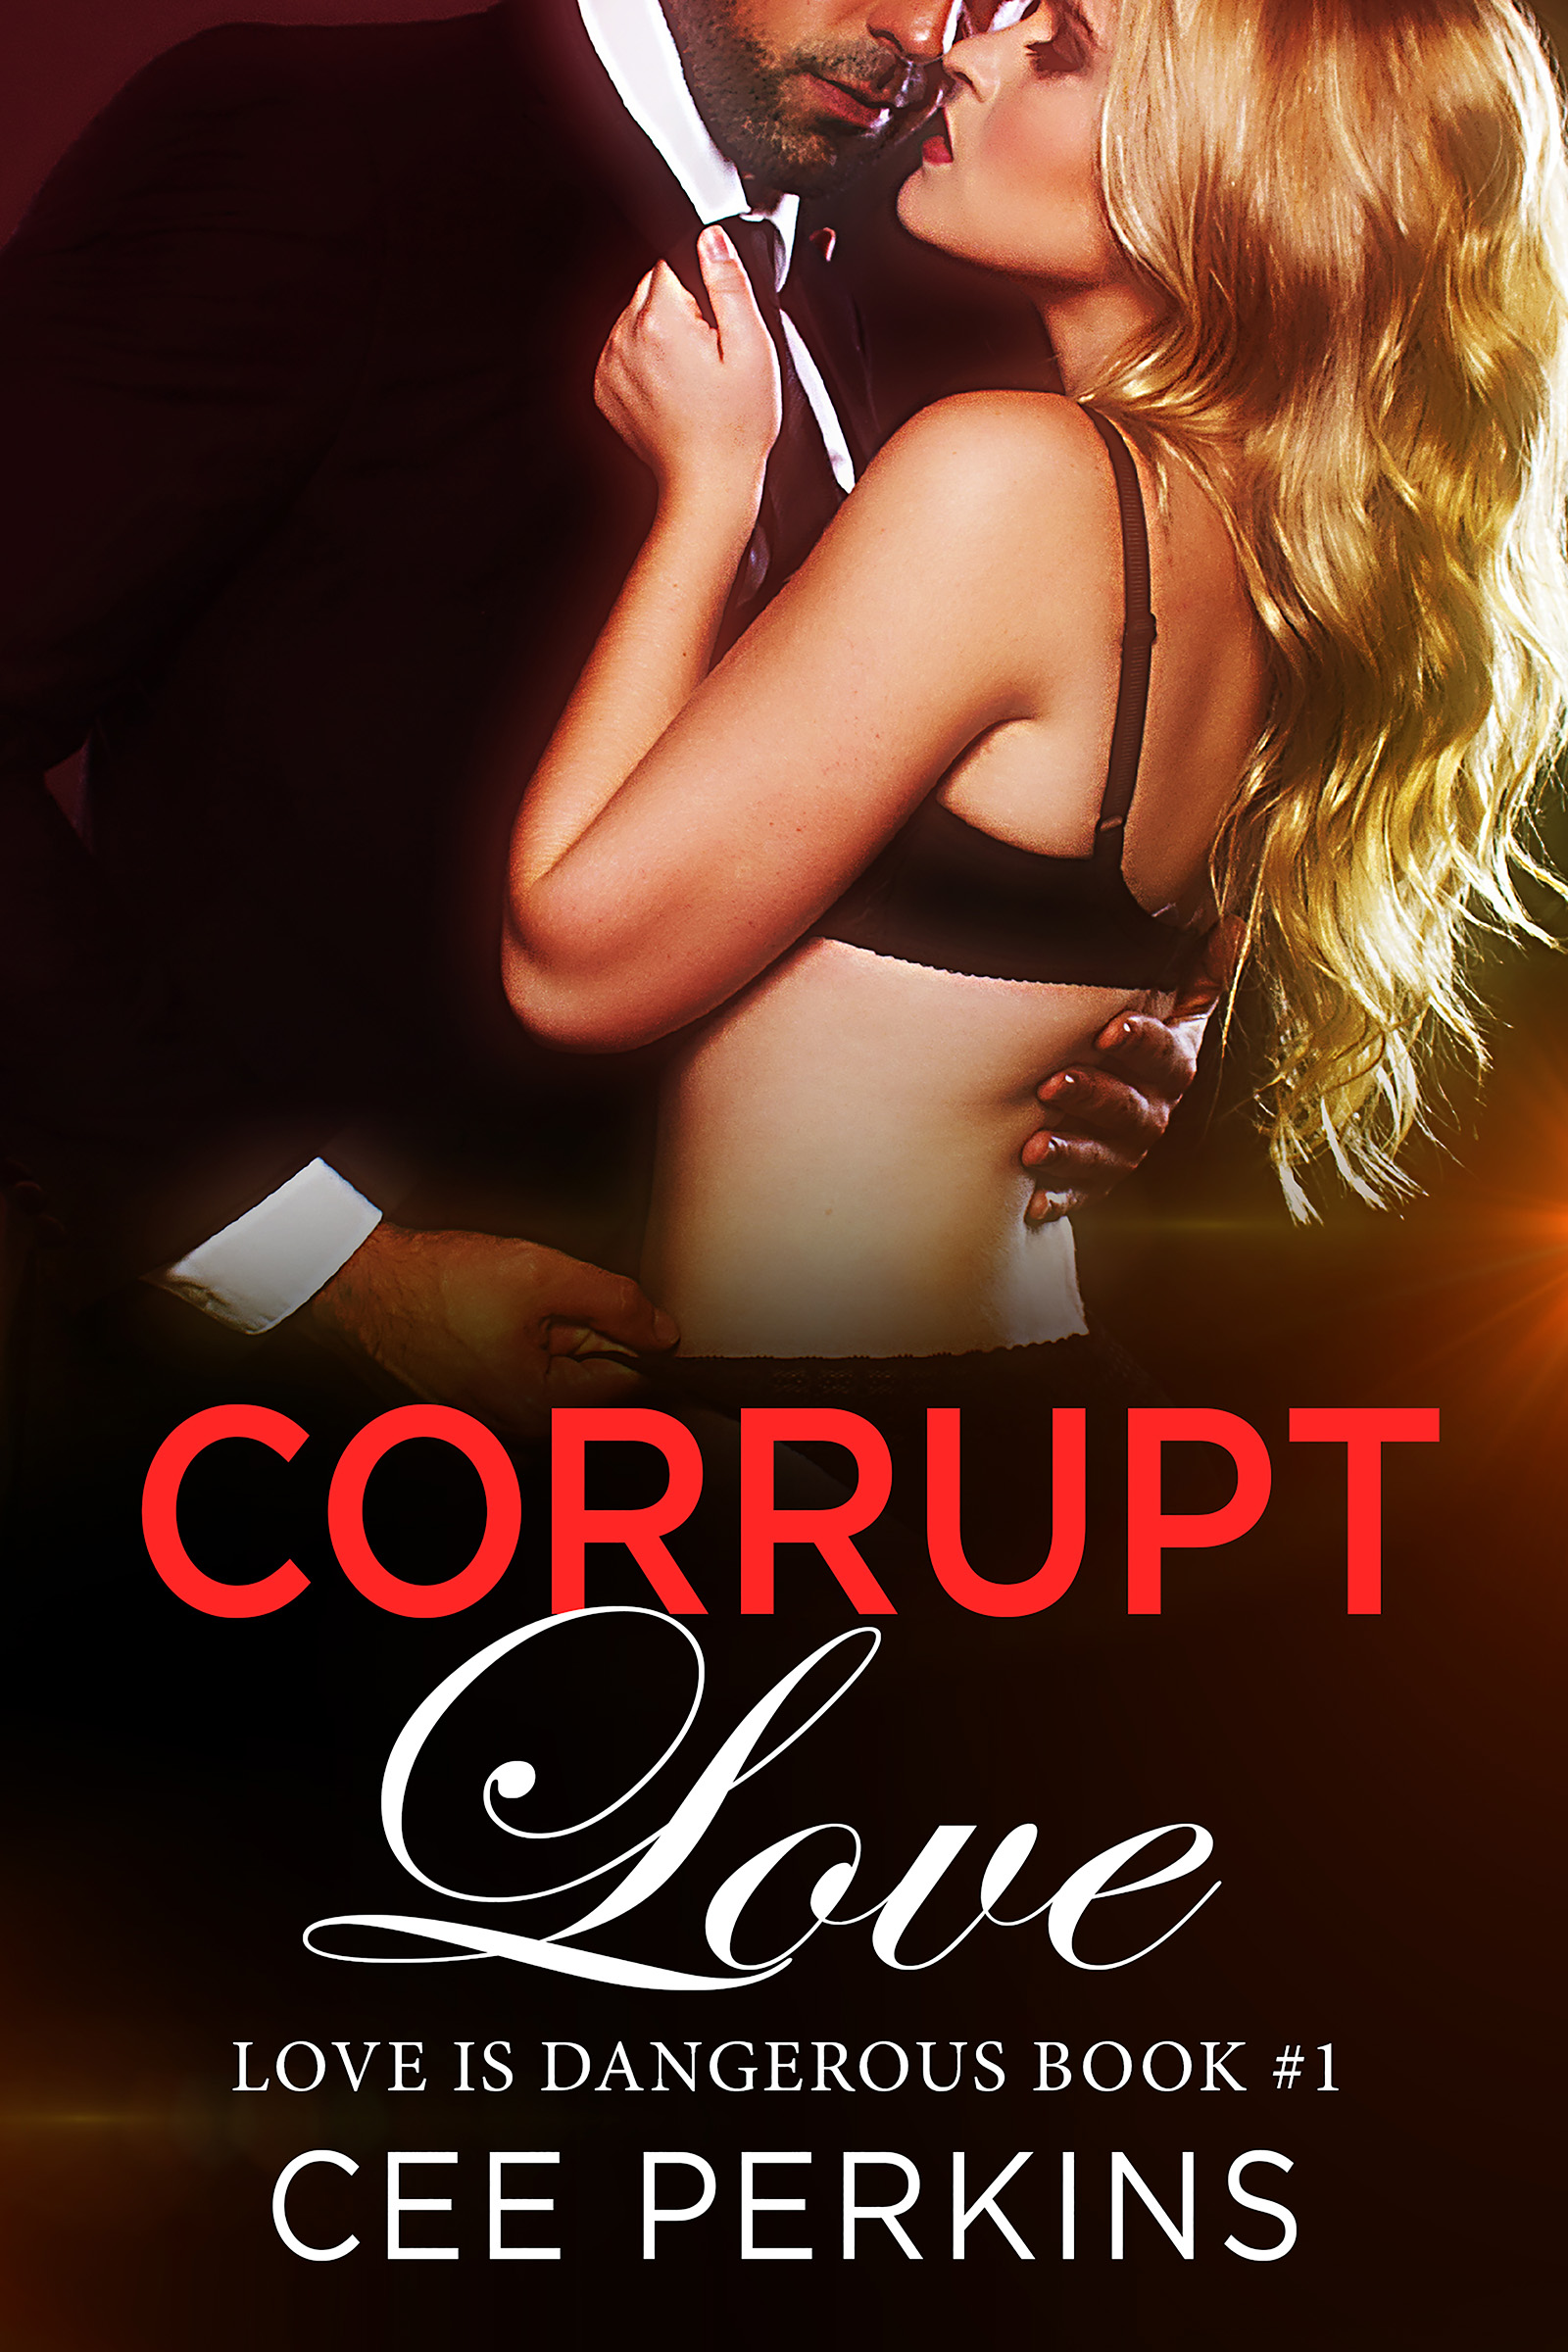 Corrupt Love c OTHER SITES (1) (1)